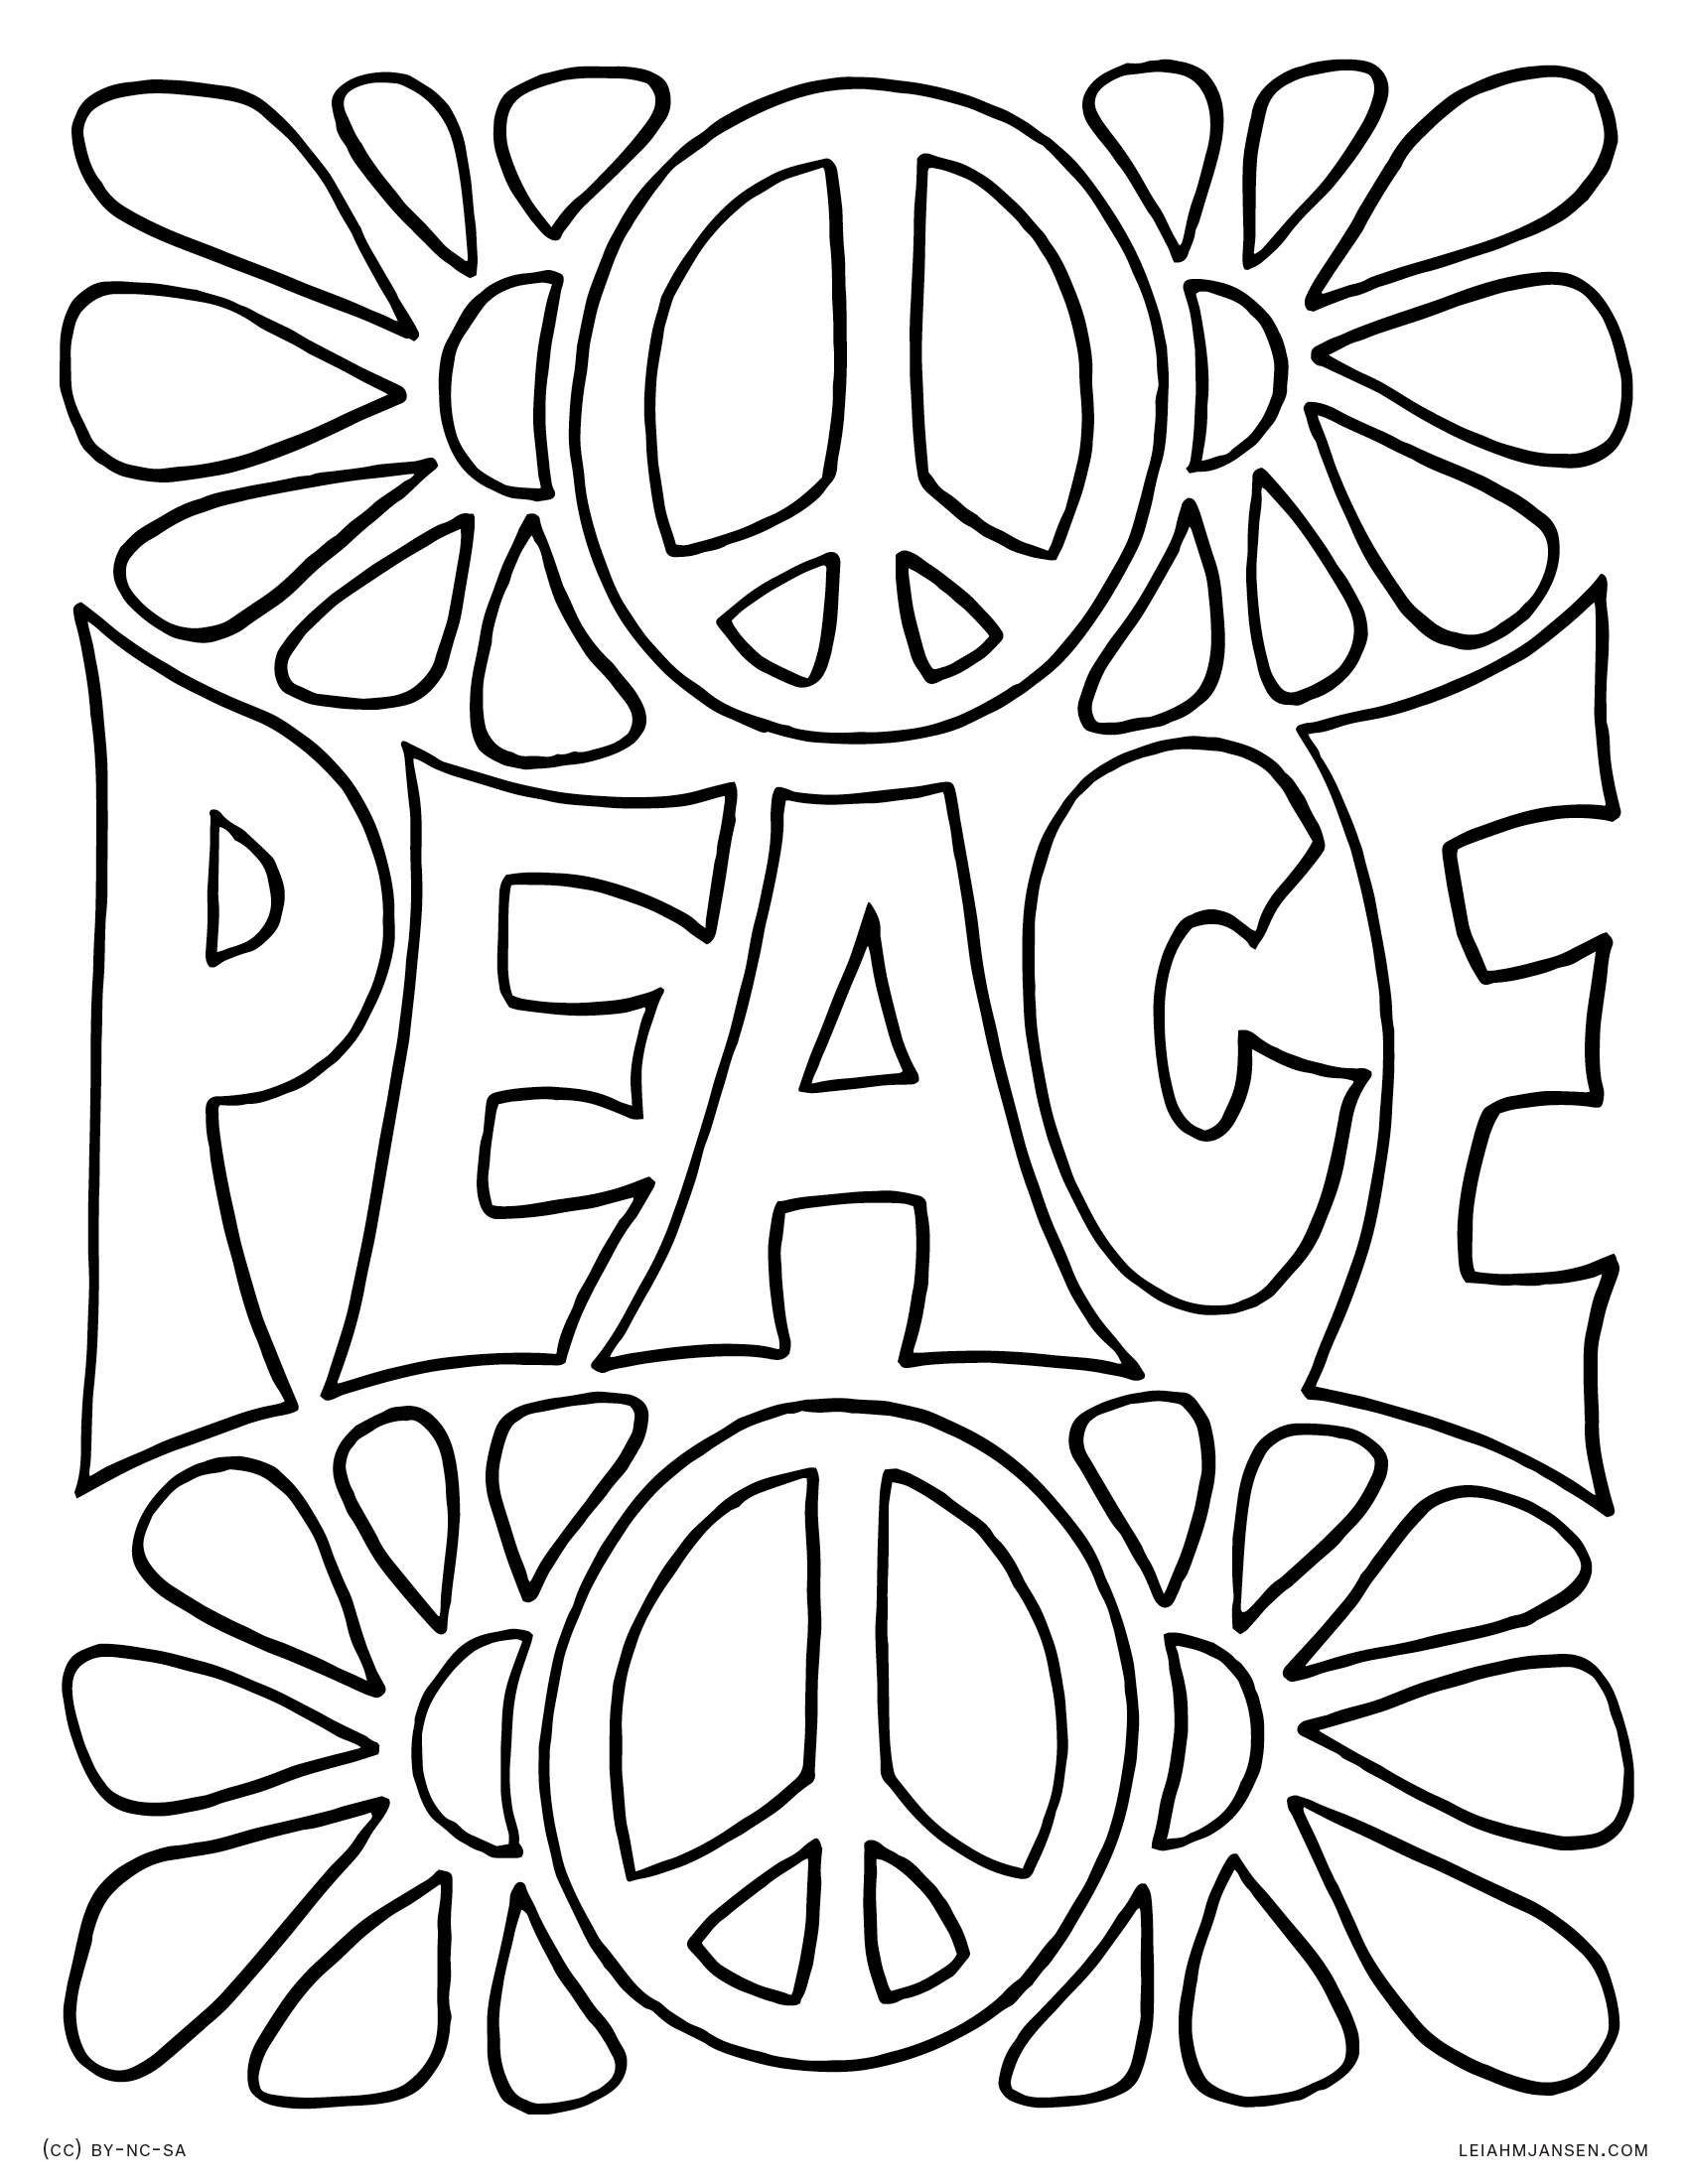 Coloring pages for Color word coloring pages